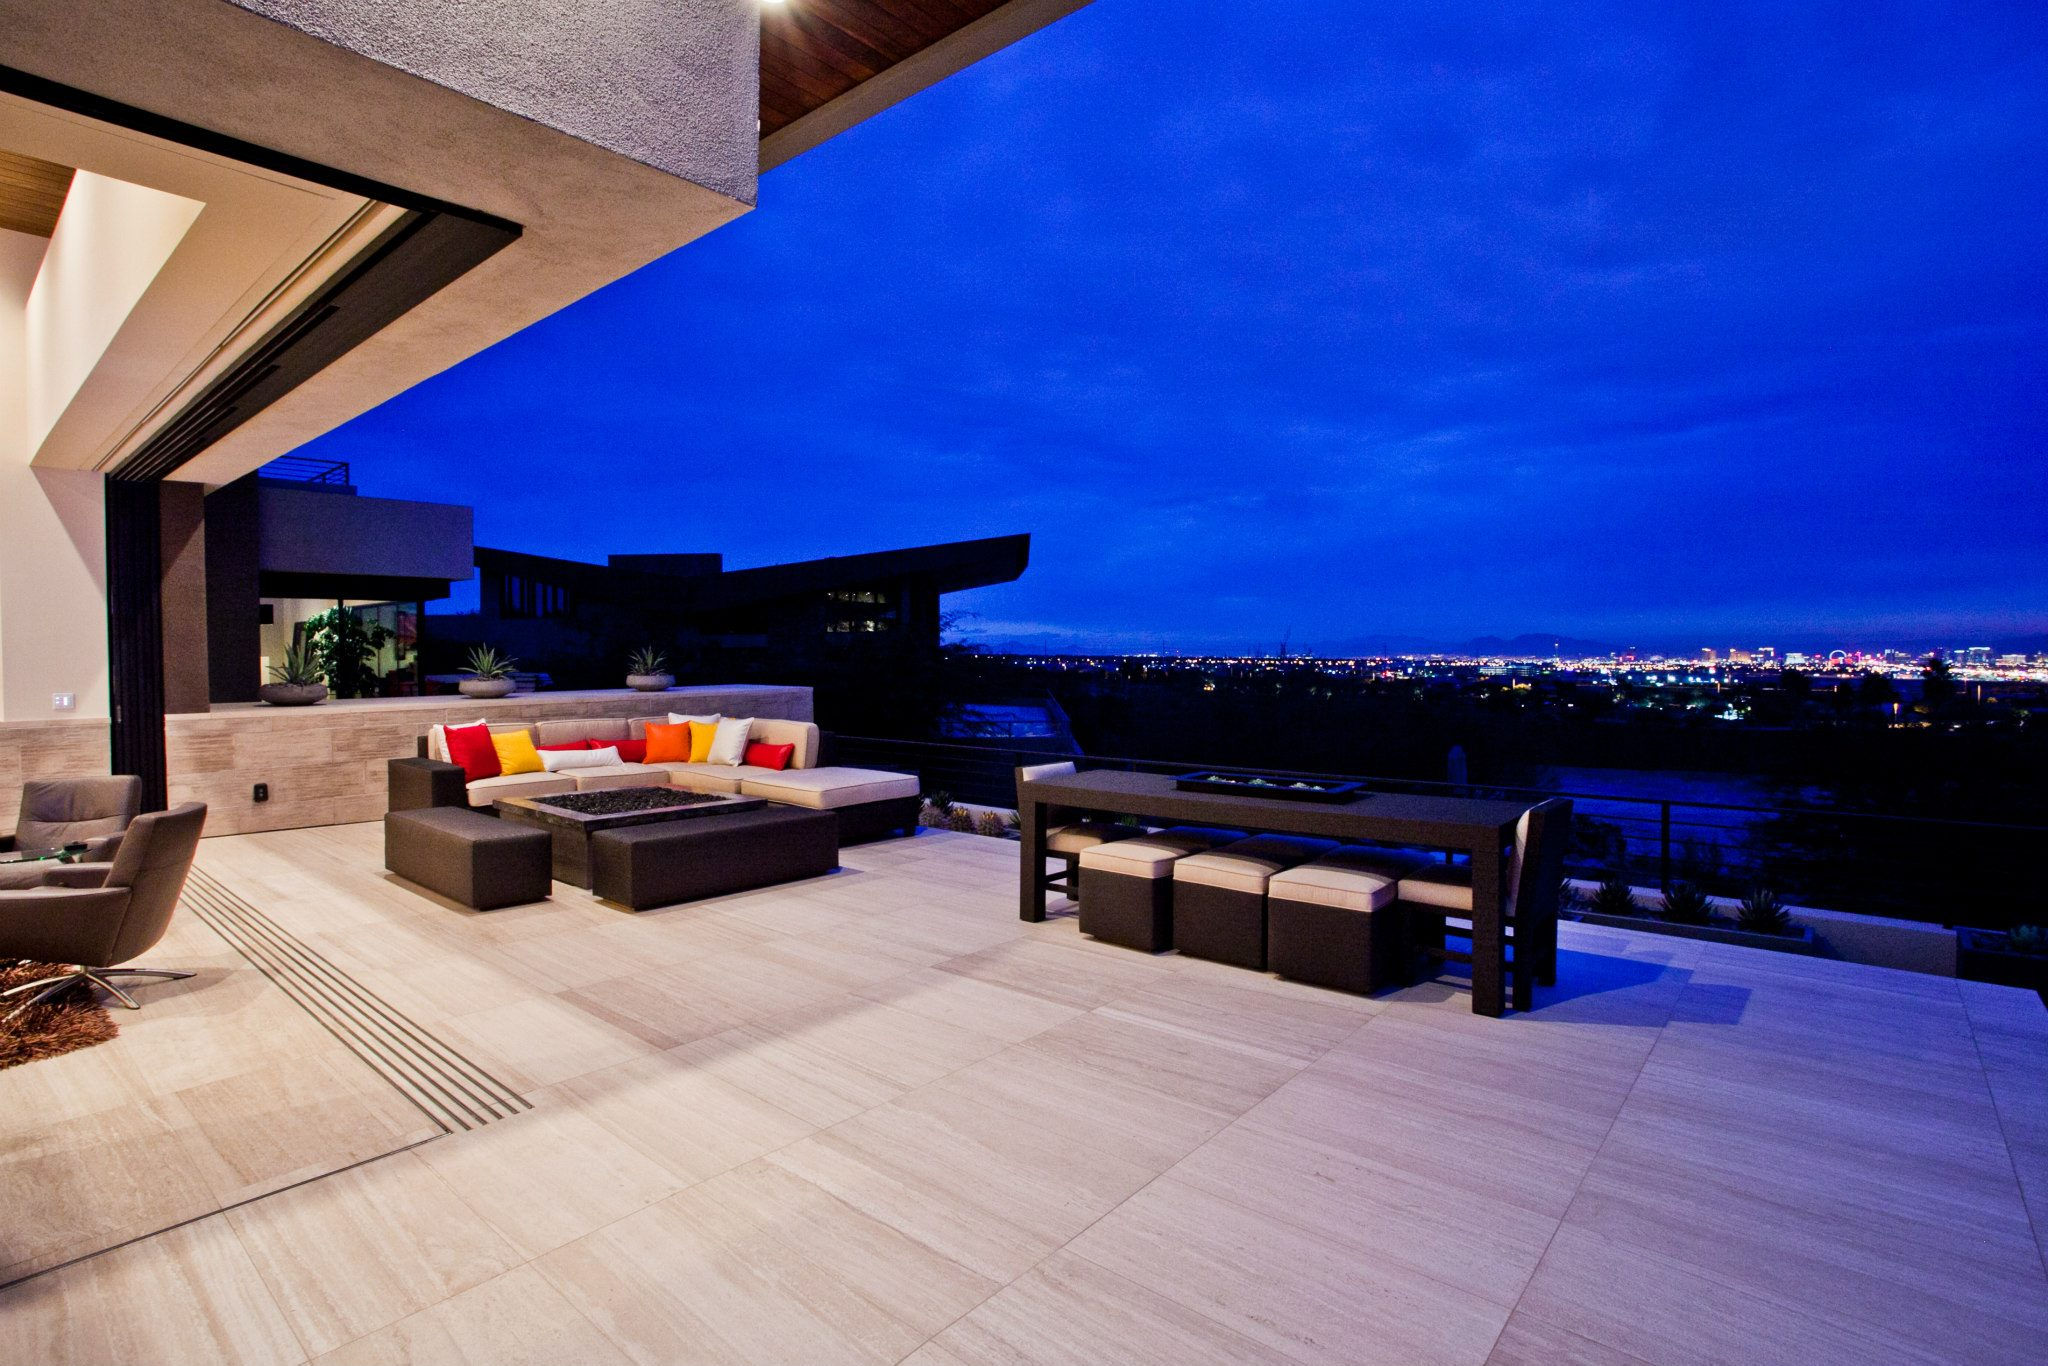 Patio area with amazing view of Vegas' blue skies